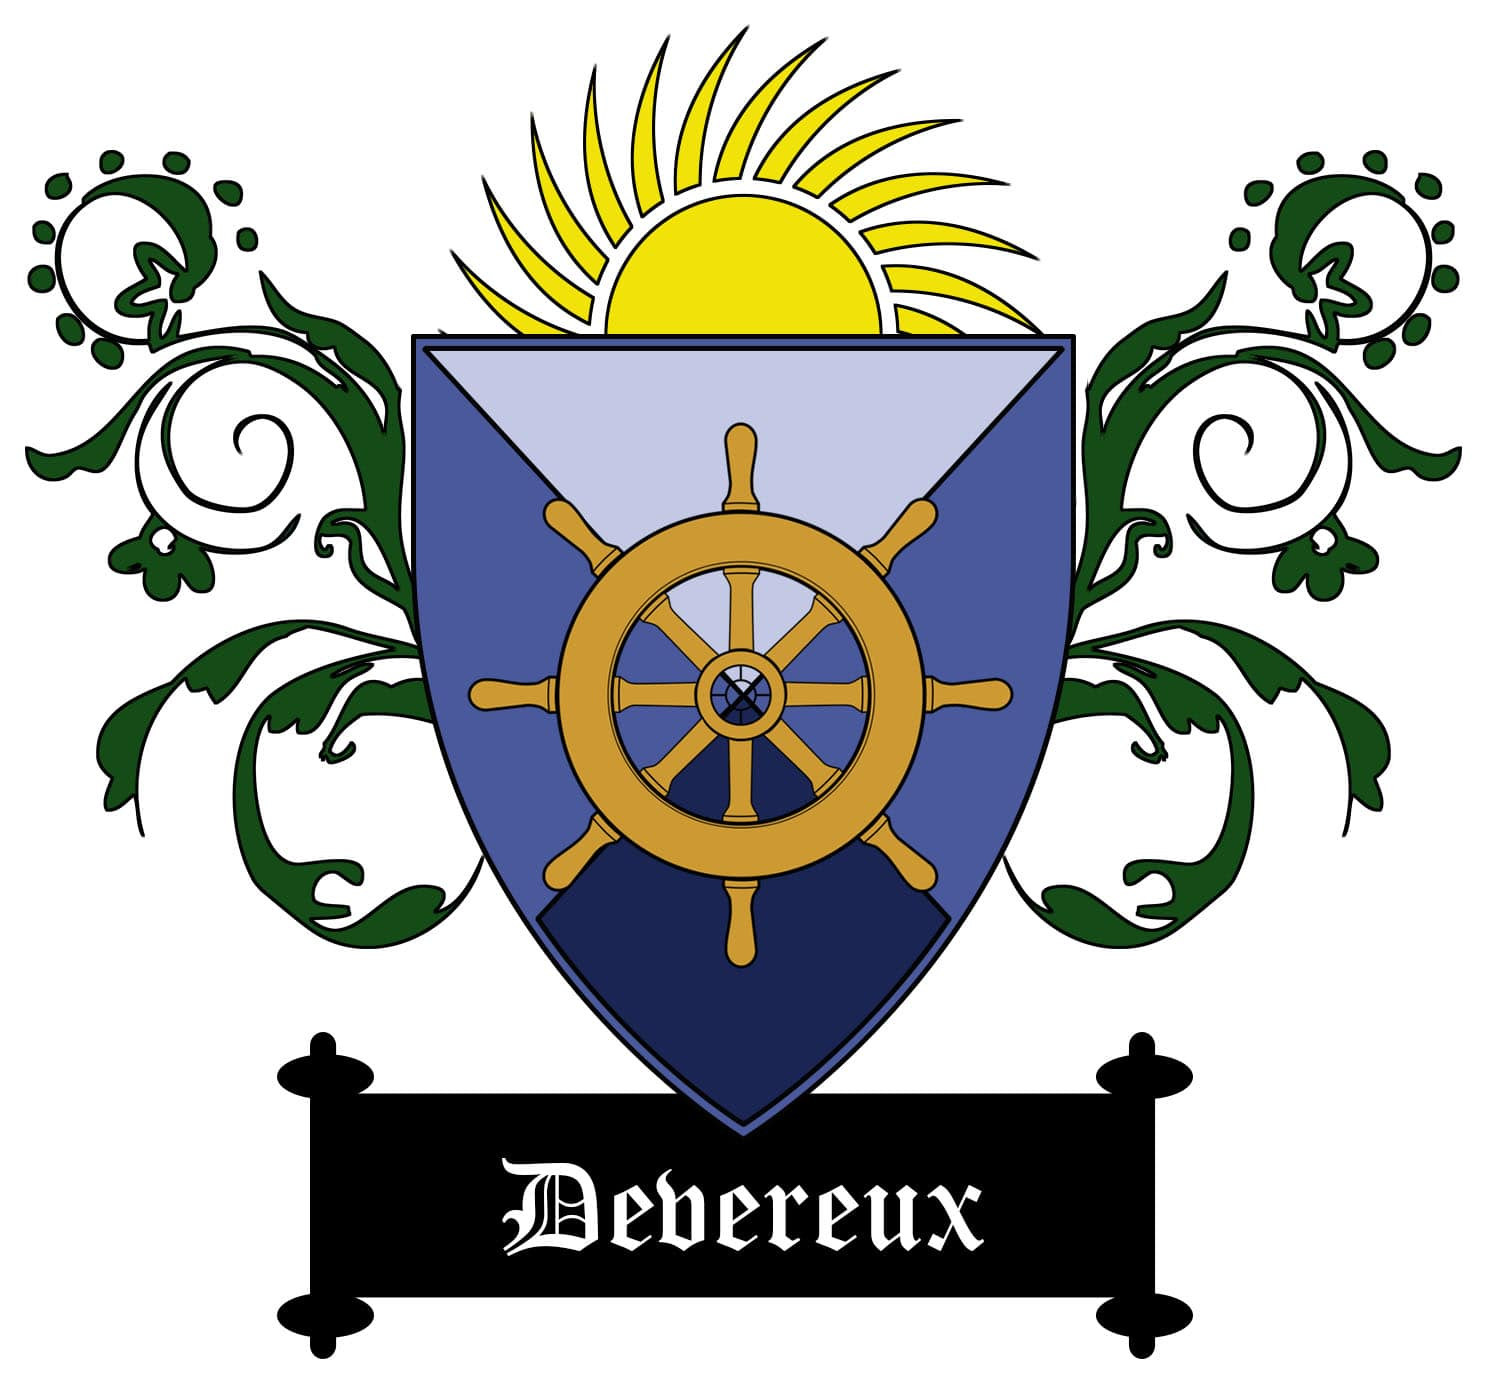 Devereux.jpg